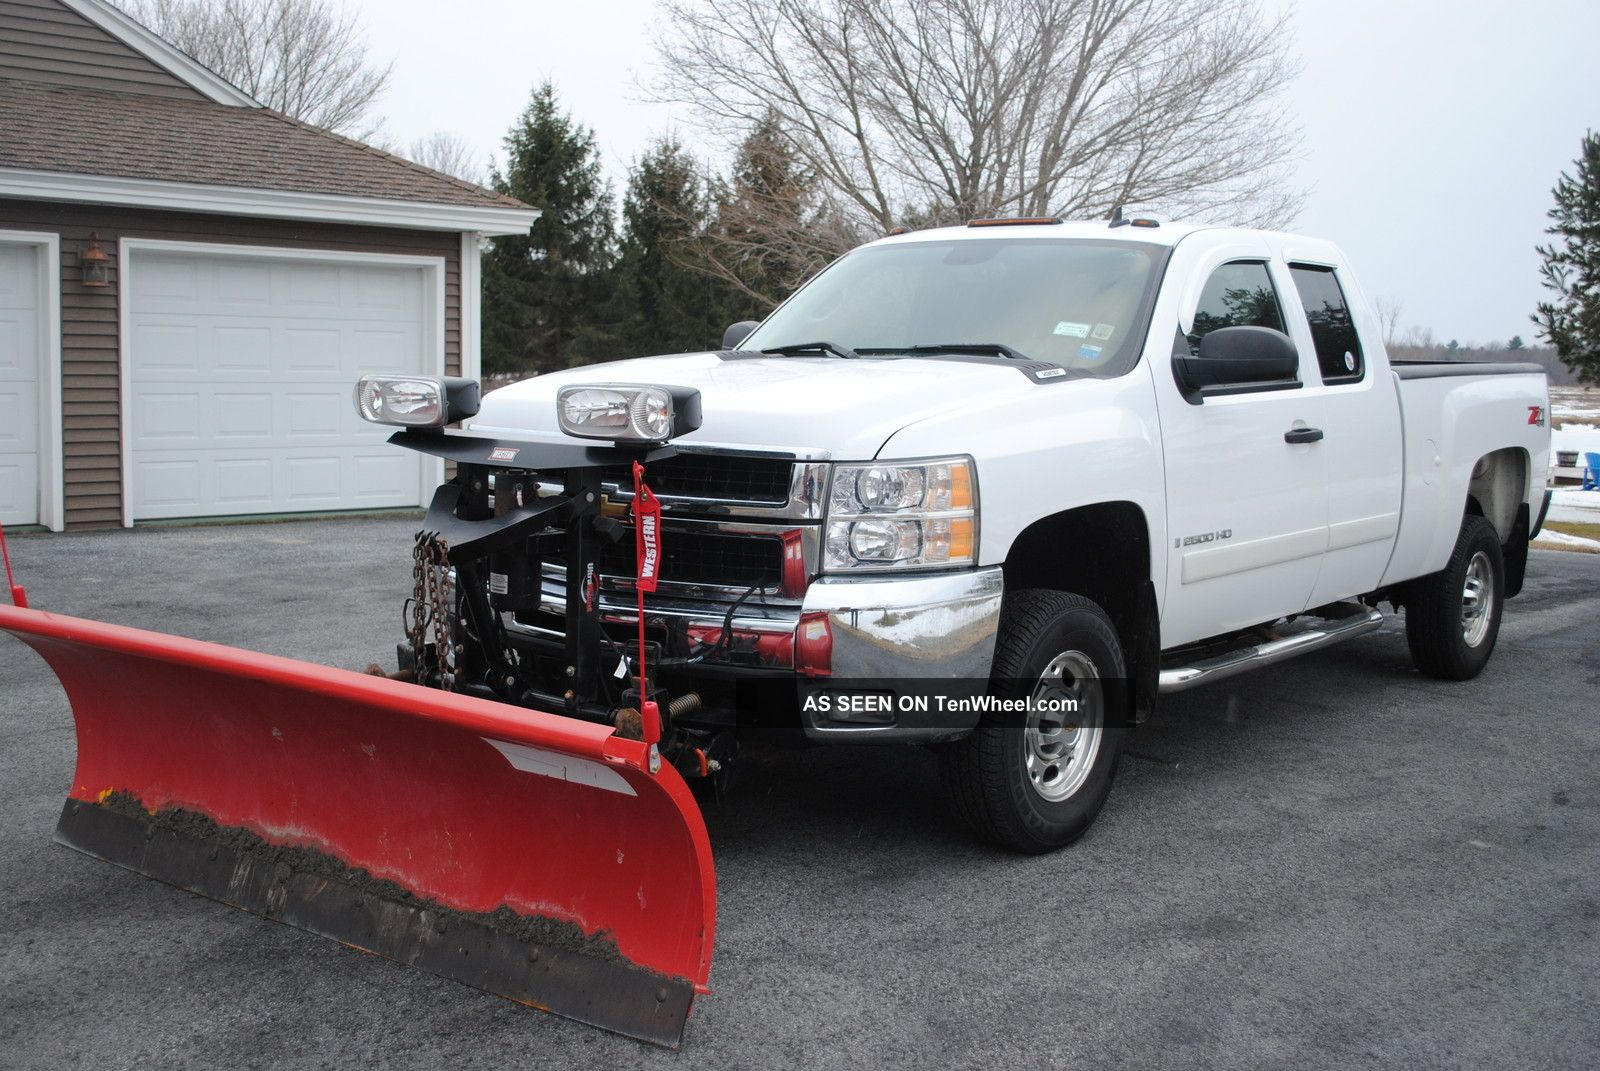 2008 chevy silverado 2500 hd 4x4 towing package western plow liner low